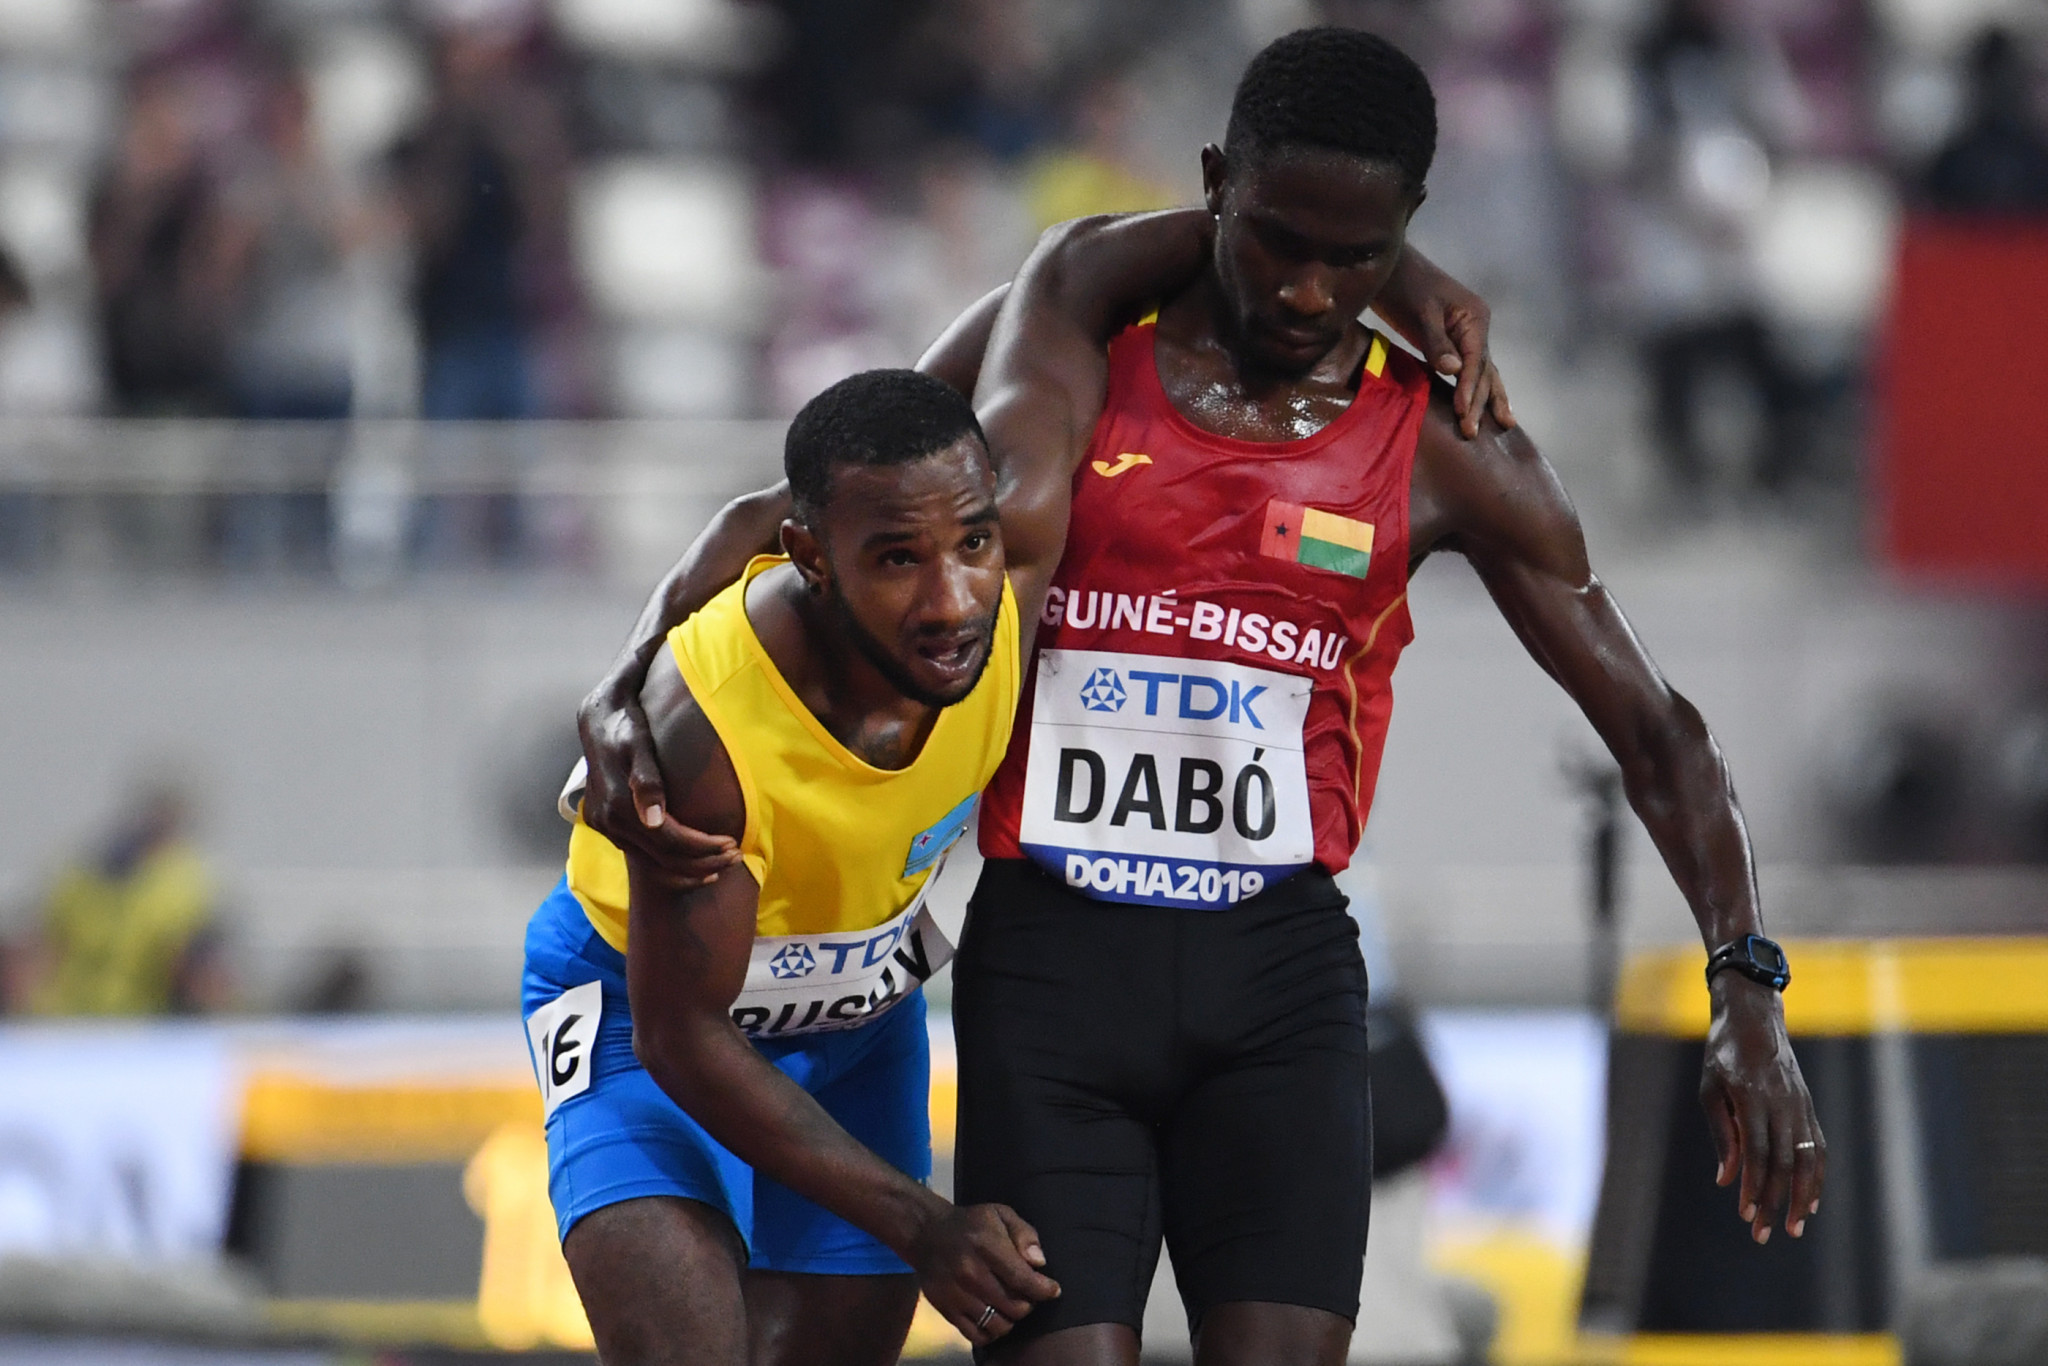 Guinea-Bissau runner makes a name at IAAF World Championships with selfless assistance of stricken opponent